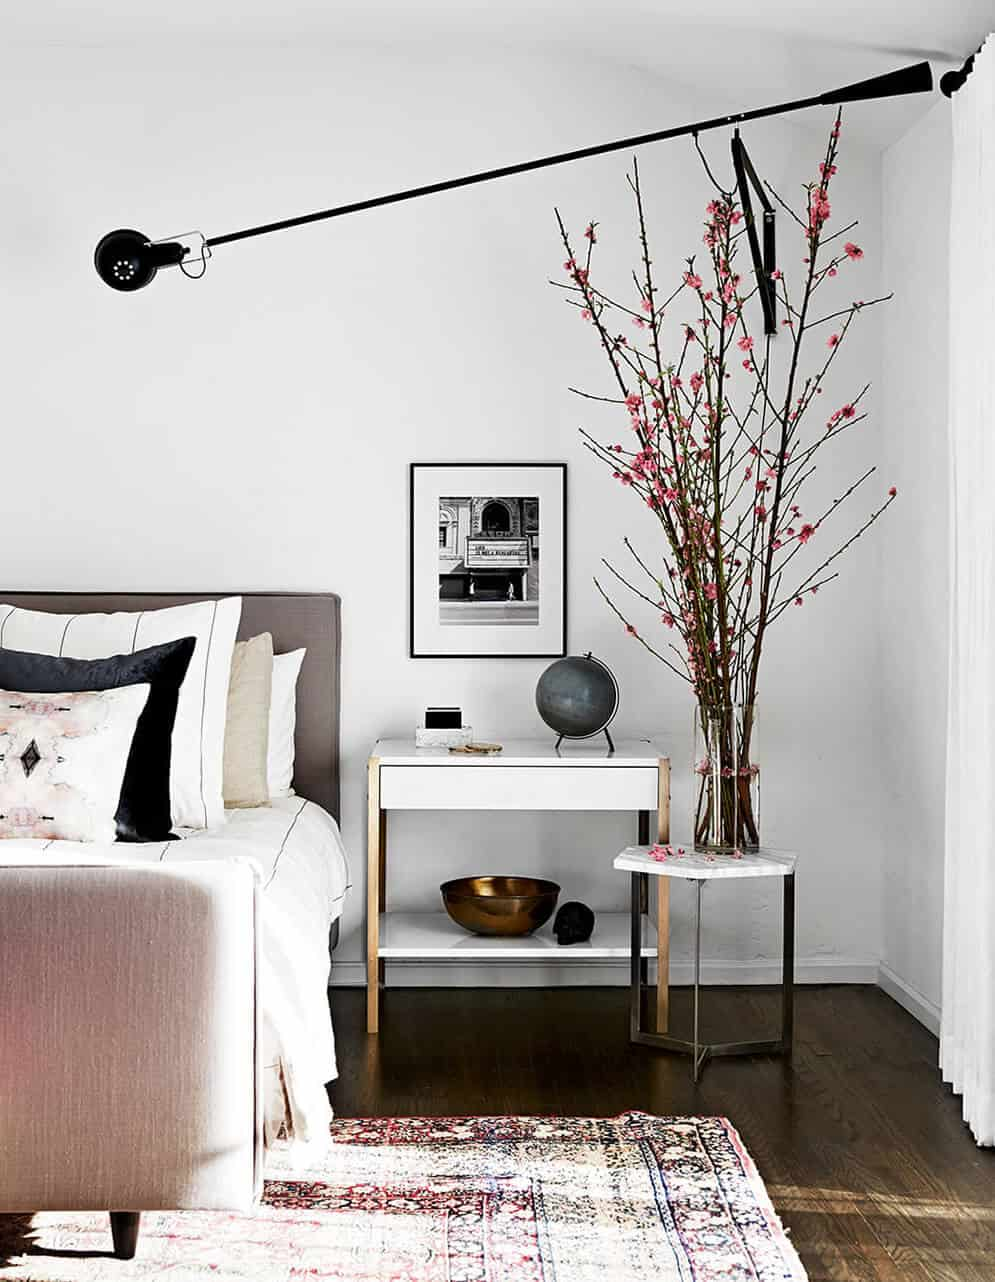 bedroom_blush_pink_flos light_emily henderson